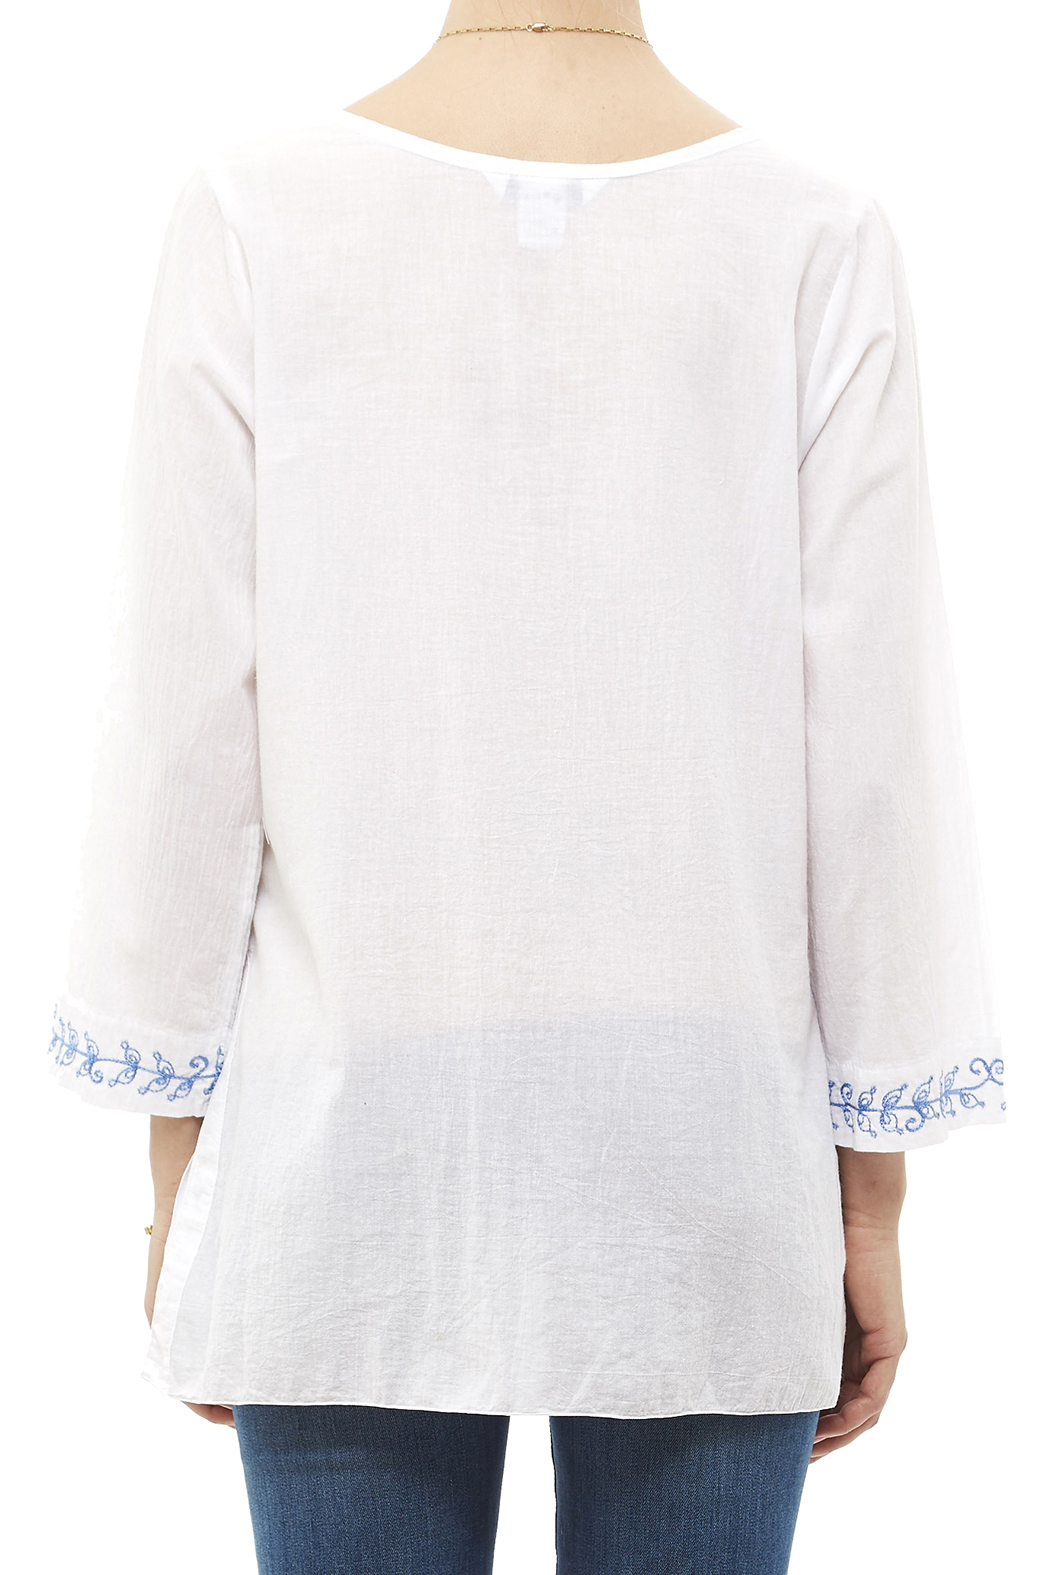 Fresco by Nomadic Traders White Embroidered Blouse - Back Cropped Image